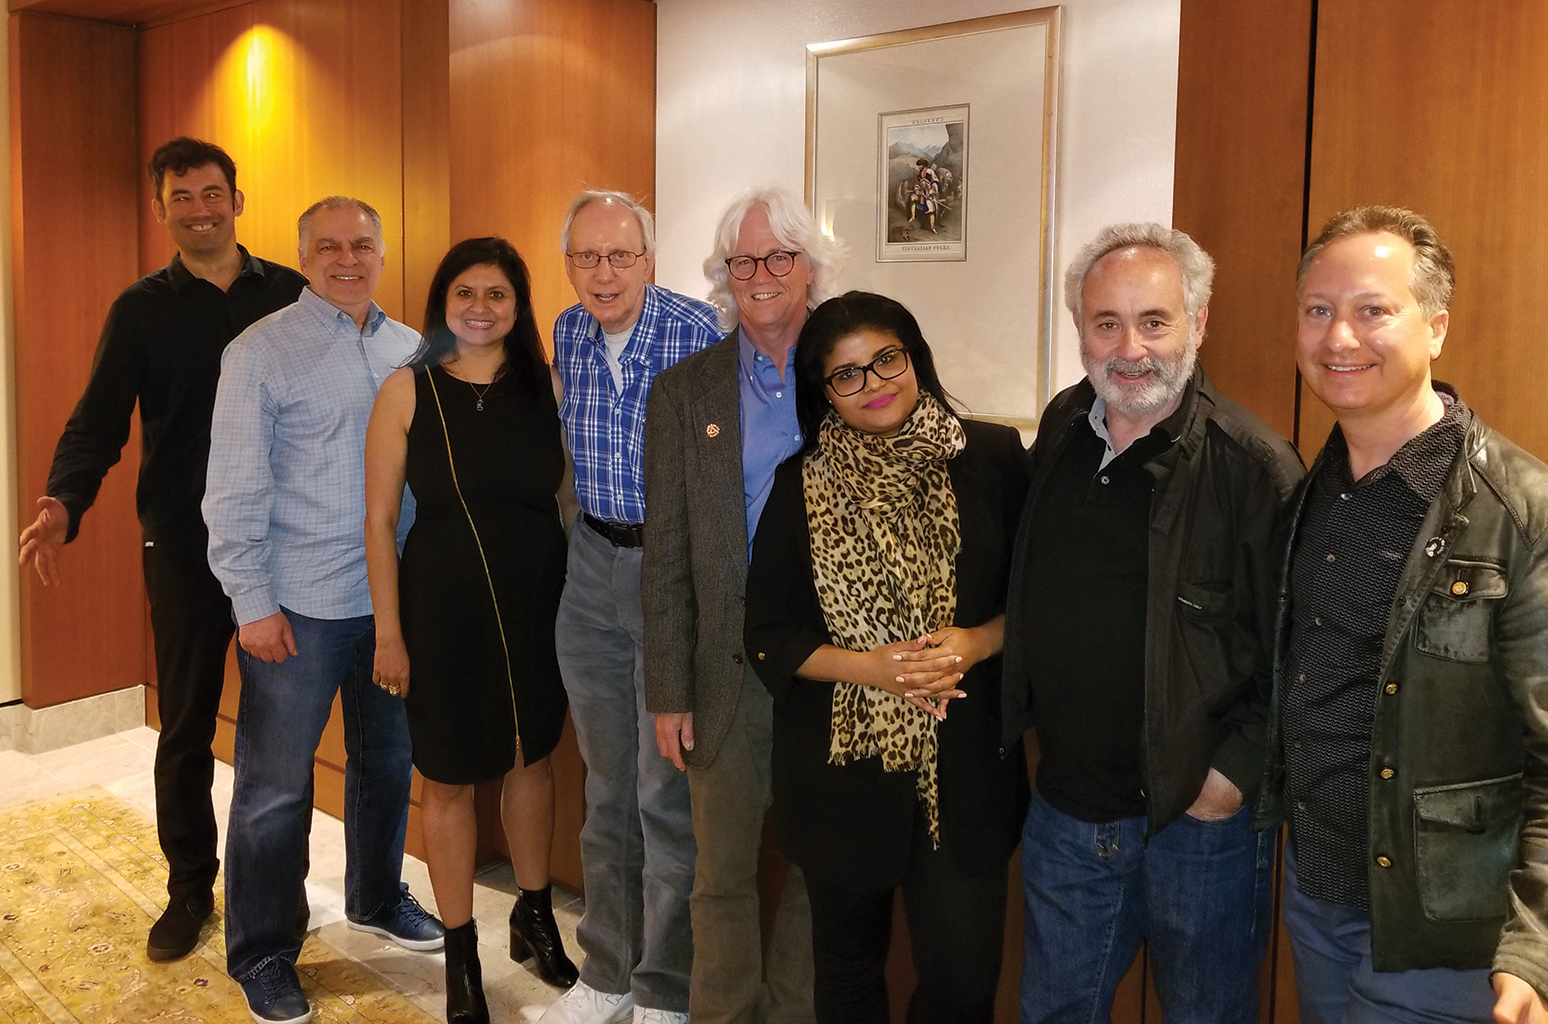 From left: IMMF's Jake Beaumont-Nesbitt, MMF-US board member Jerry Lembo, MMF-US membership and fundraising representative Neeta Ragoowansi, MMF-US founder/president Bergman and MMF board members Garvan, Yaya Rey, Wolmark and Jack Bookbinder.